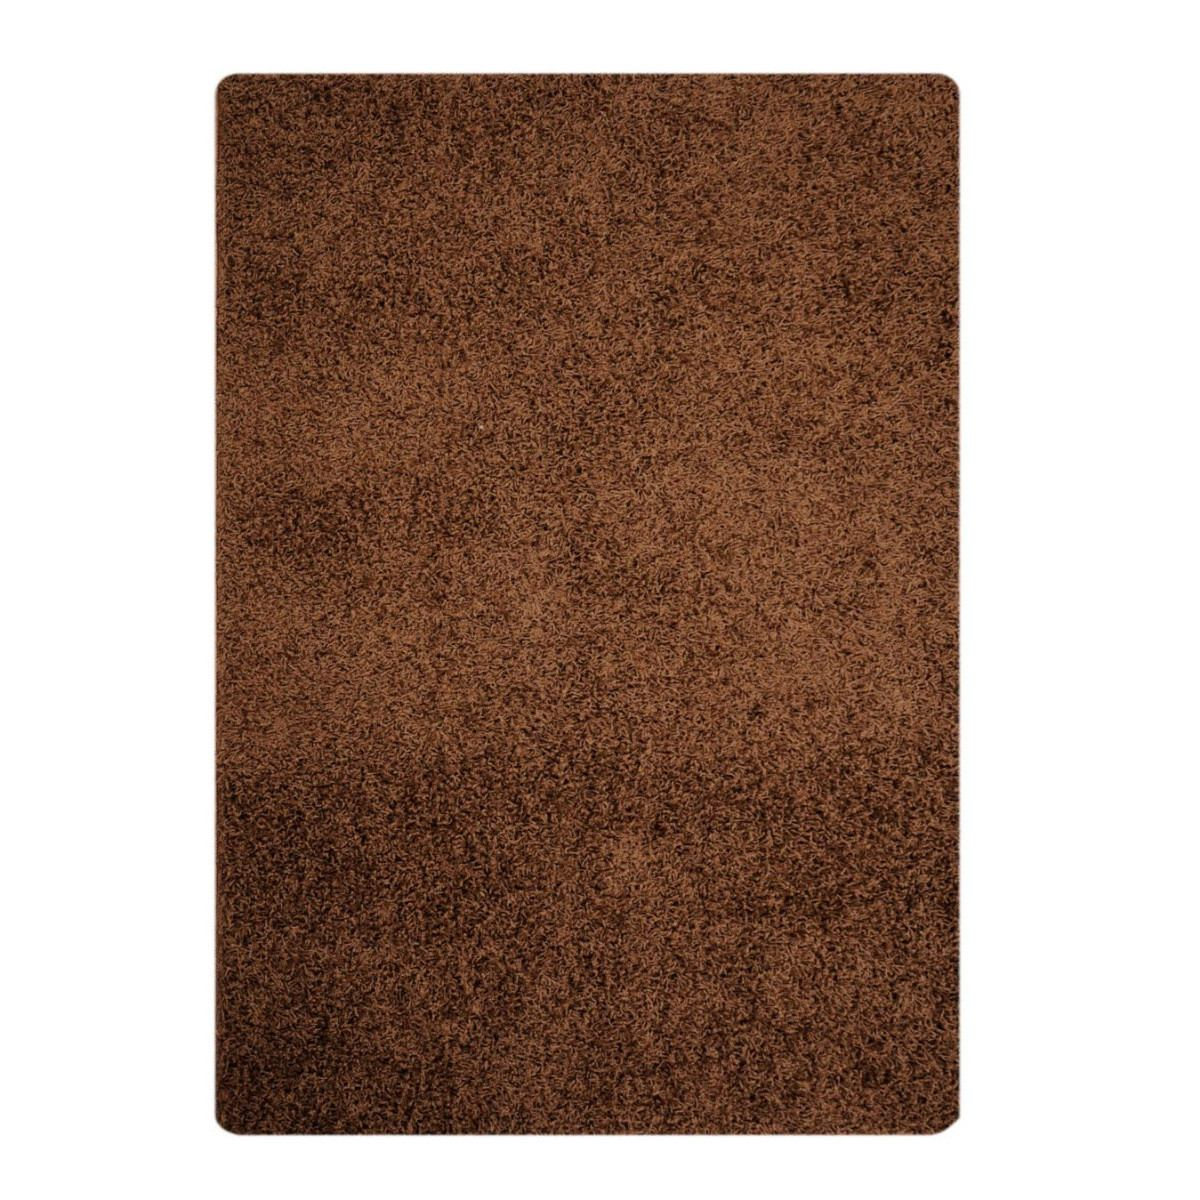 tapete alfombra conrad shag 120x170 cm cafe home collection D NQ NP 944903 MCO25959976429 092017 F - Tapete Cafe